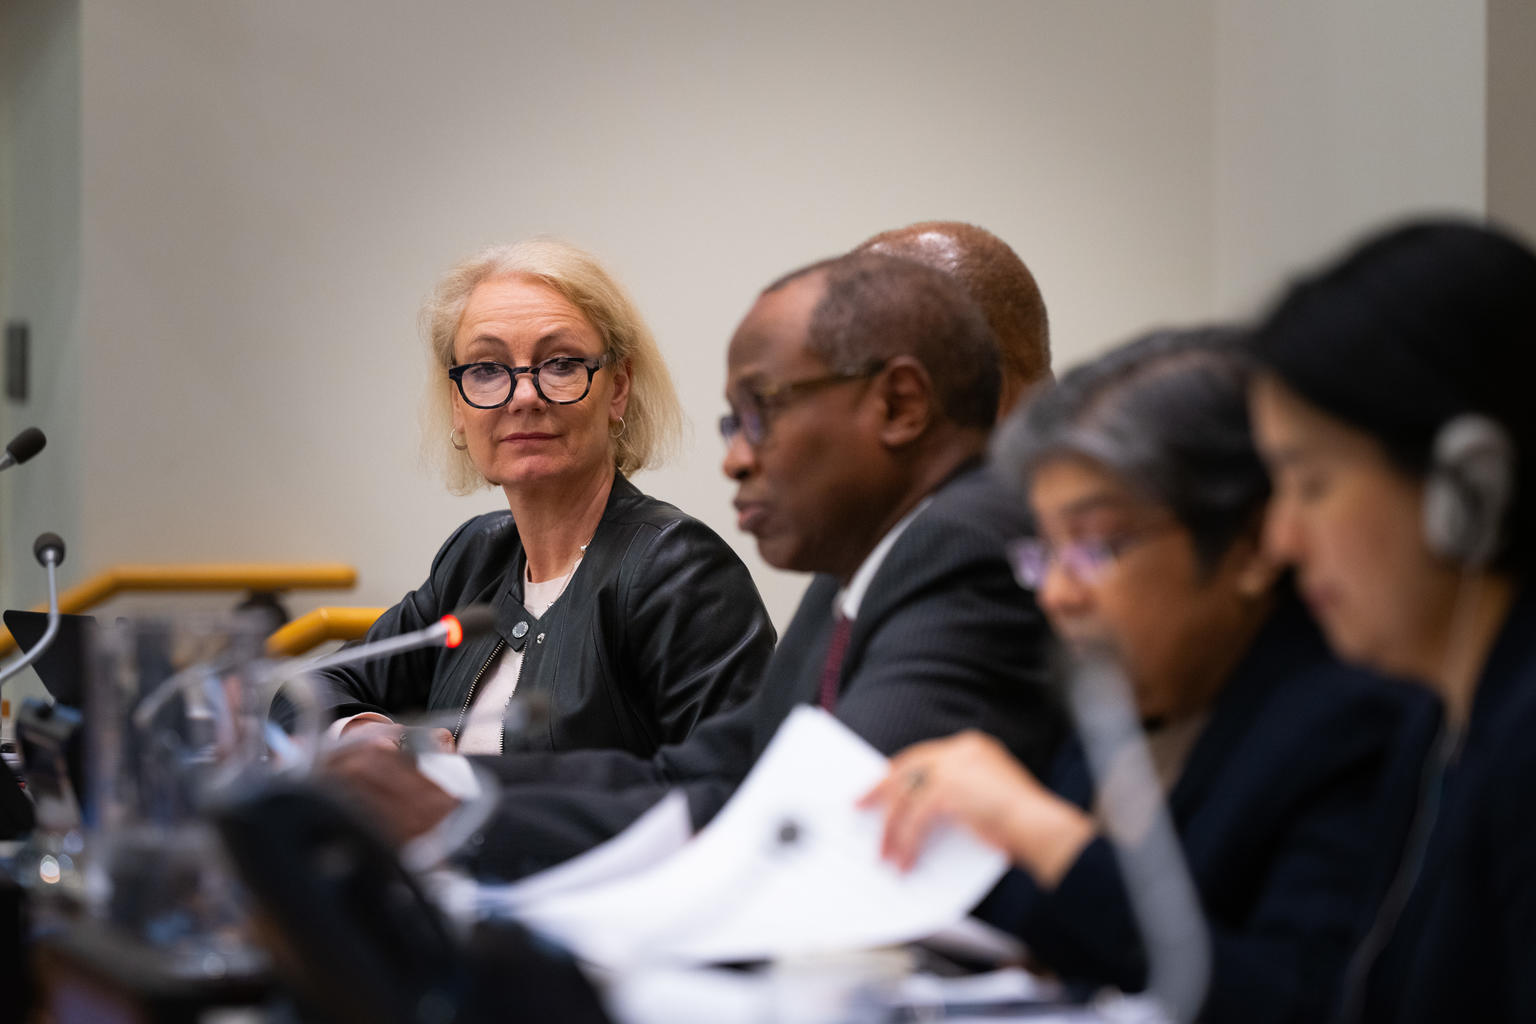 ARCHIVE: On 11 February 2020, Charlotte Petri Gornitzka (left), UNICEF Deputy Executive Director (Partnerships) at the first regular session of the UNICEF 2020 Executive Board, at United Nations Headquarters in New York. © UNICEF/UNI288689/McIlwaine